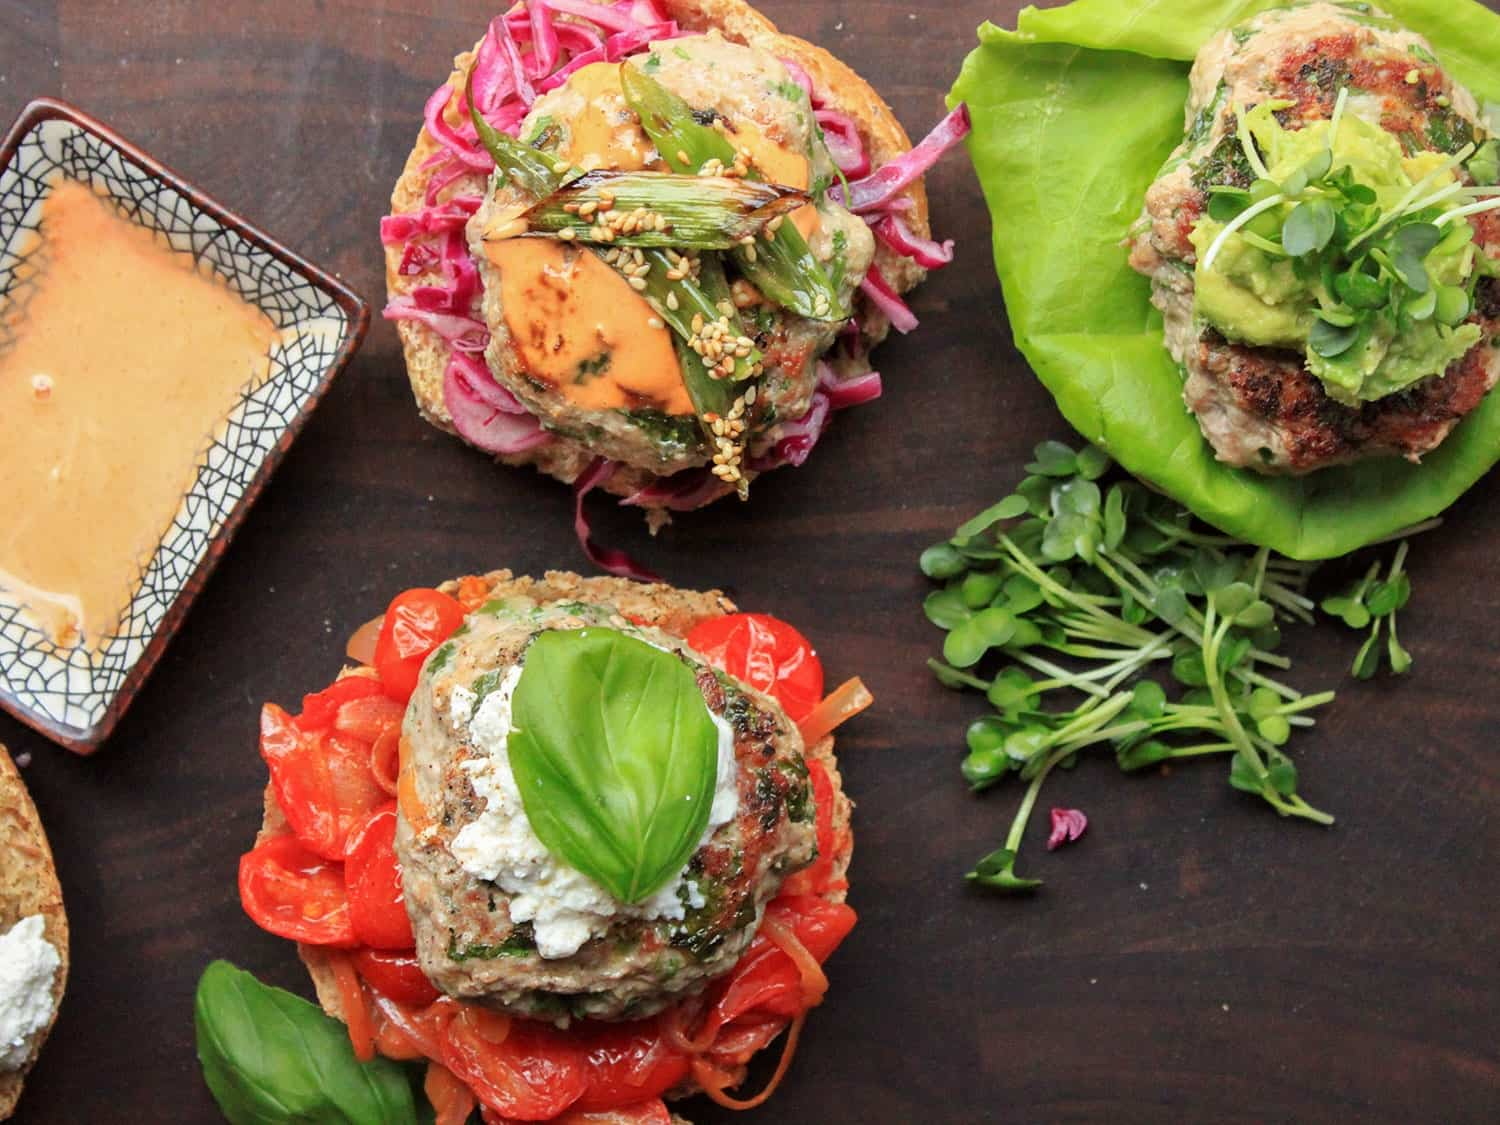 Juicy turkey burgers with sauteed tomatoes, basil, and ricotta